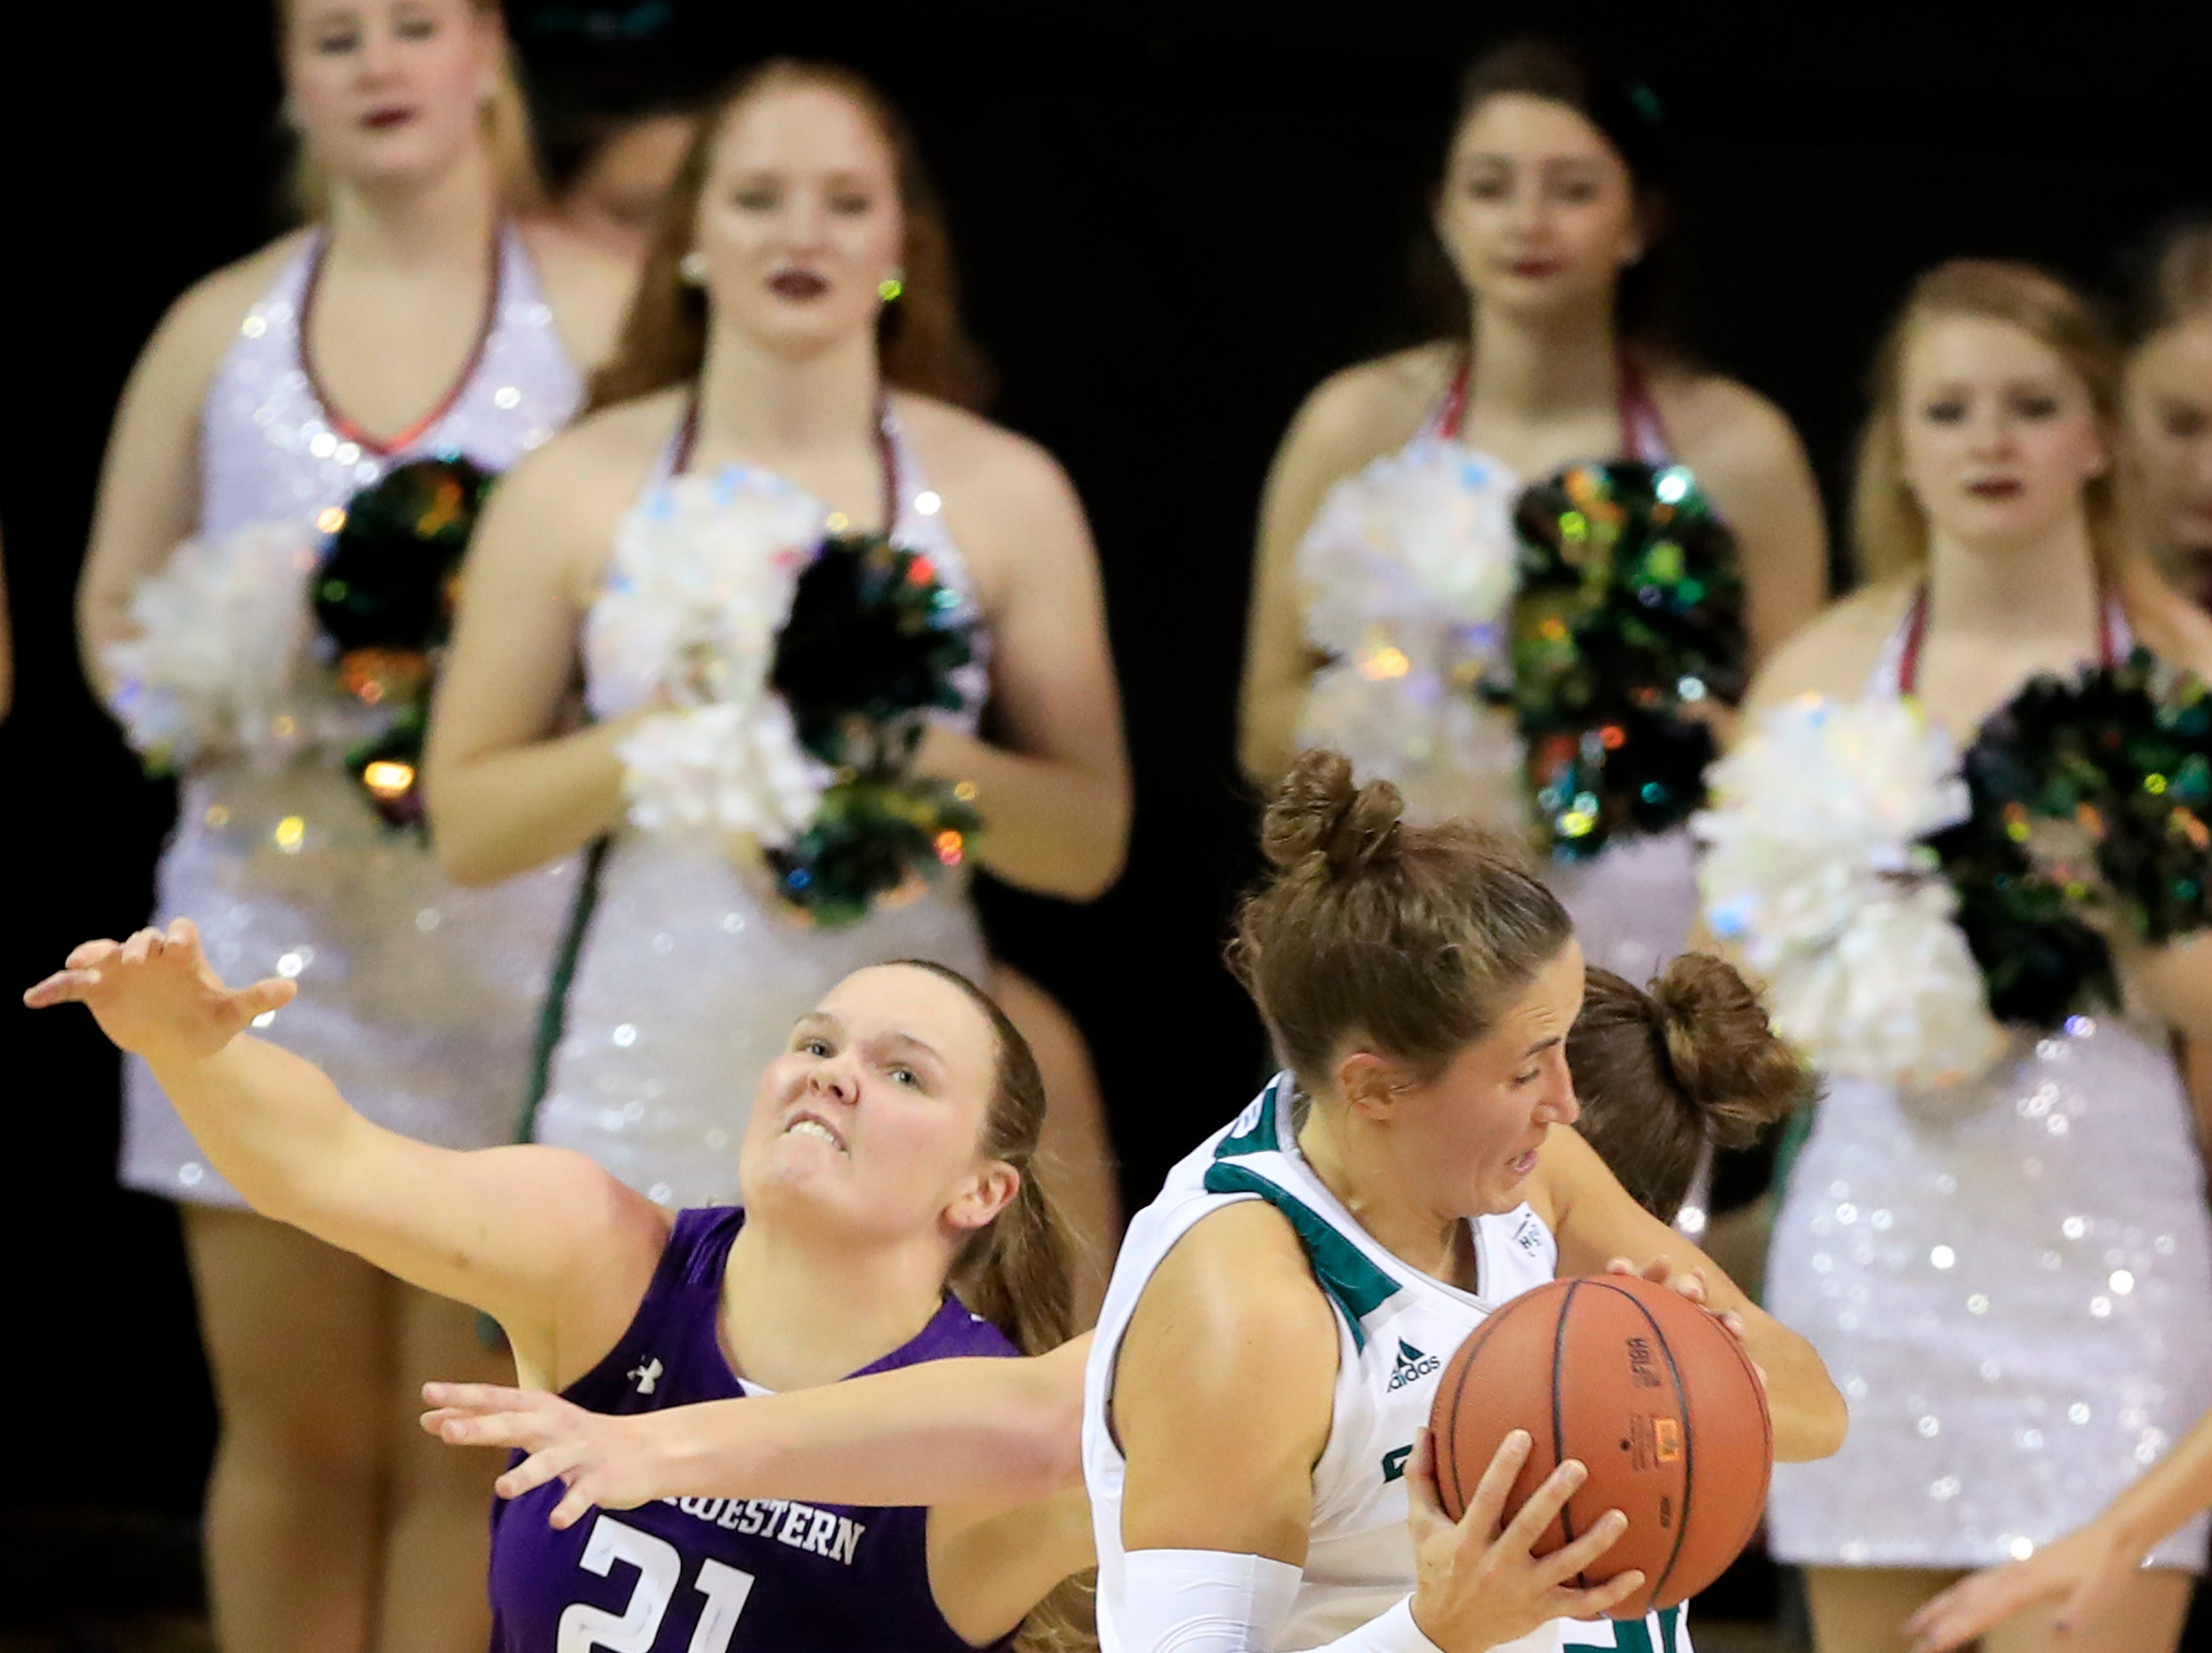 Green Bay Phoenix guard Jen Wellnitz (1) grabs a rebound against Northwestern Wildcats forward/center Abbie Wolf (21) in a women's NCAA basketball game at the Kress Center on Tuesday, November 6, 2018 in Green Bay, Wis.